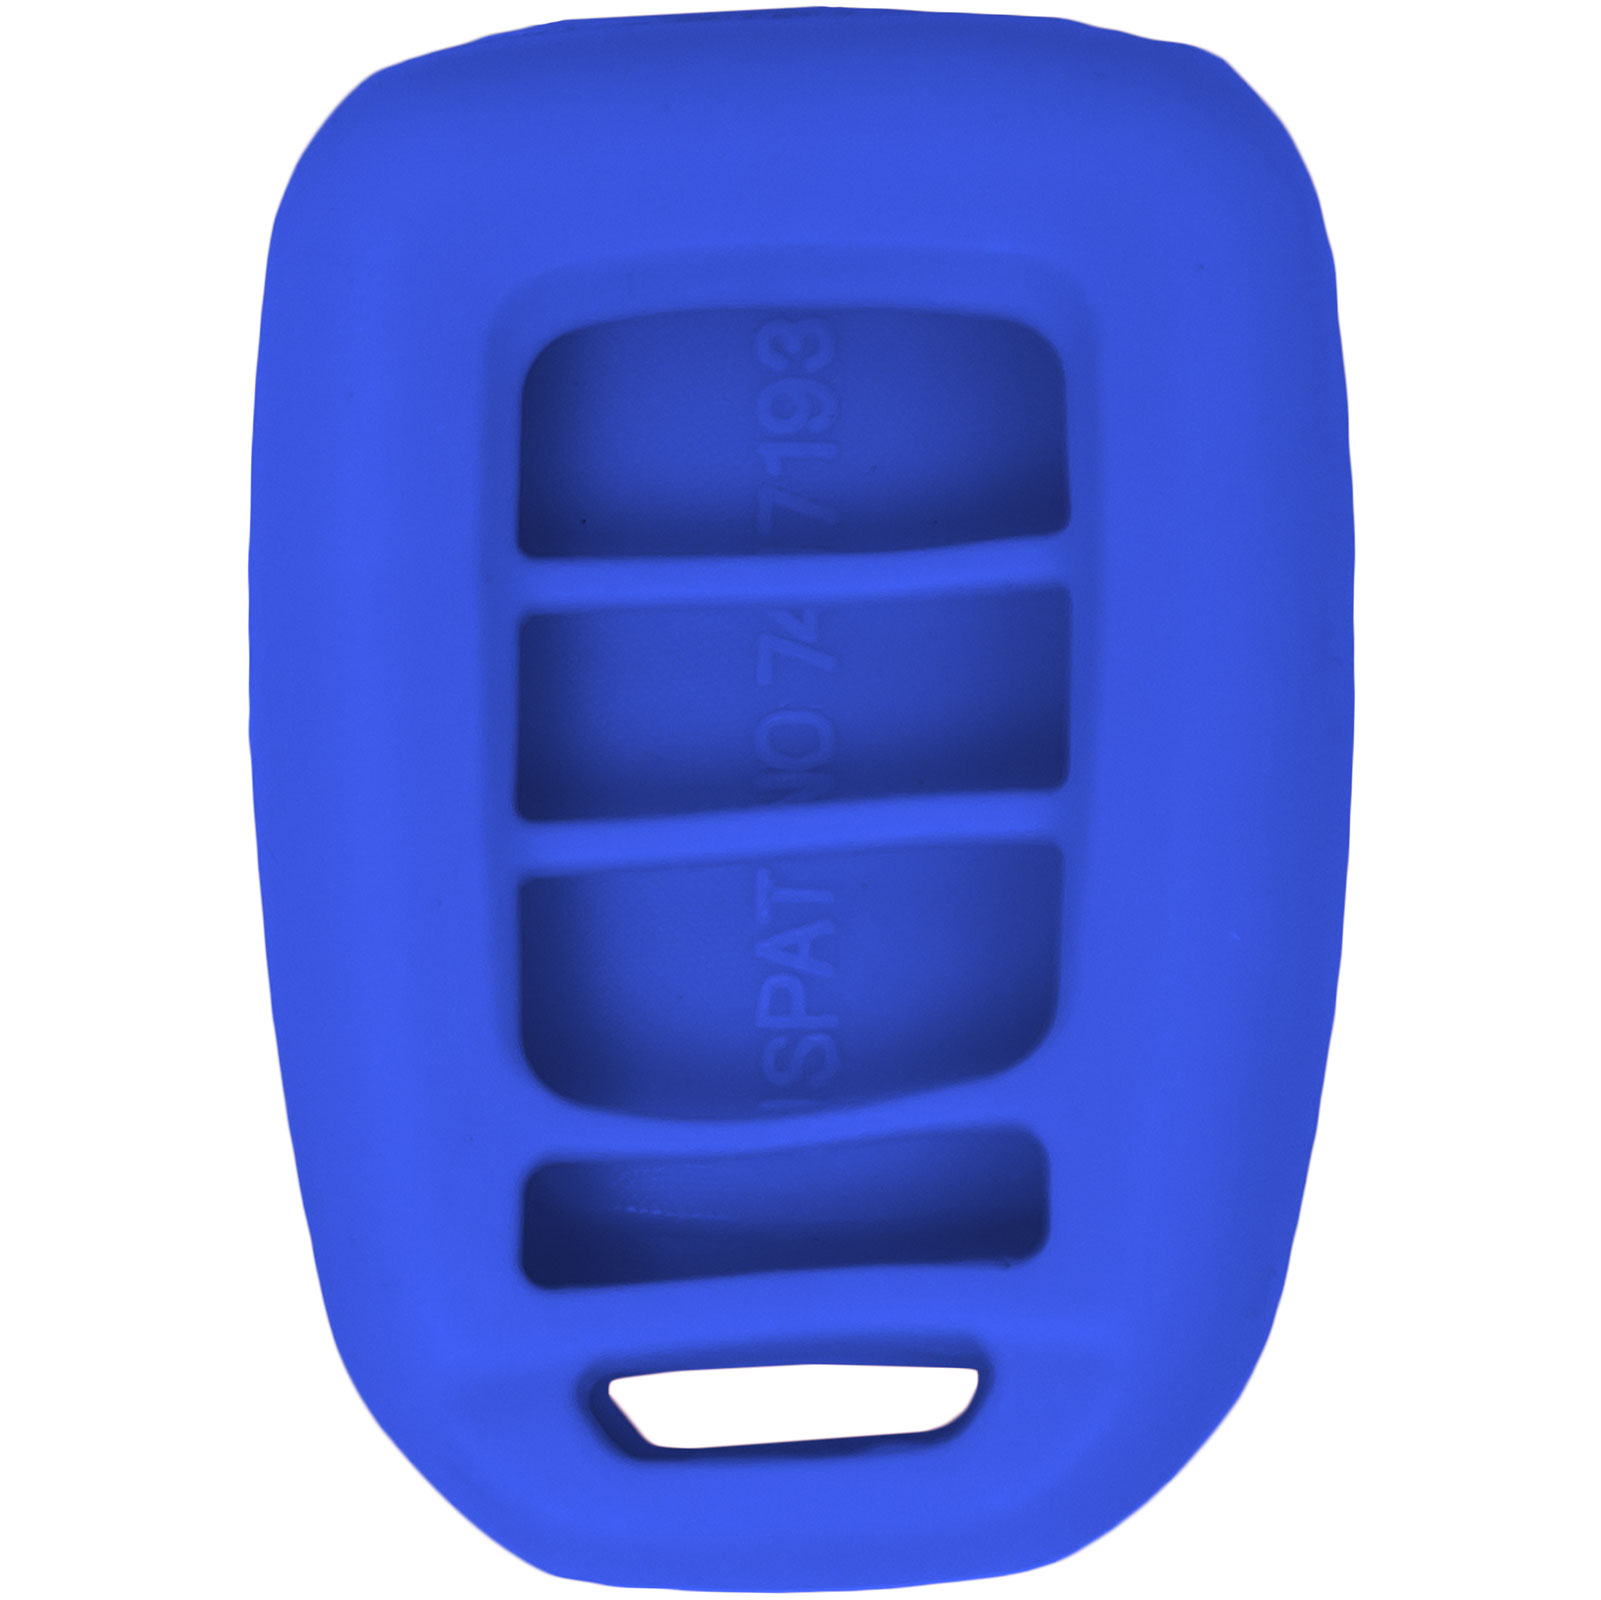 New Silicone Cover Protective Case for Select Honda Civic and Accord Remote Keys with FCC MLBHLIK6-1T